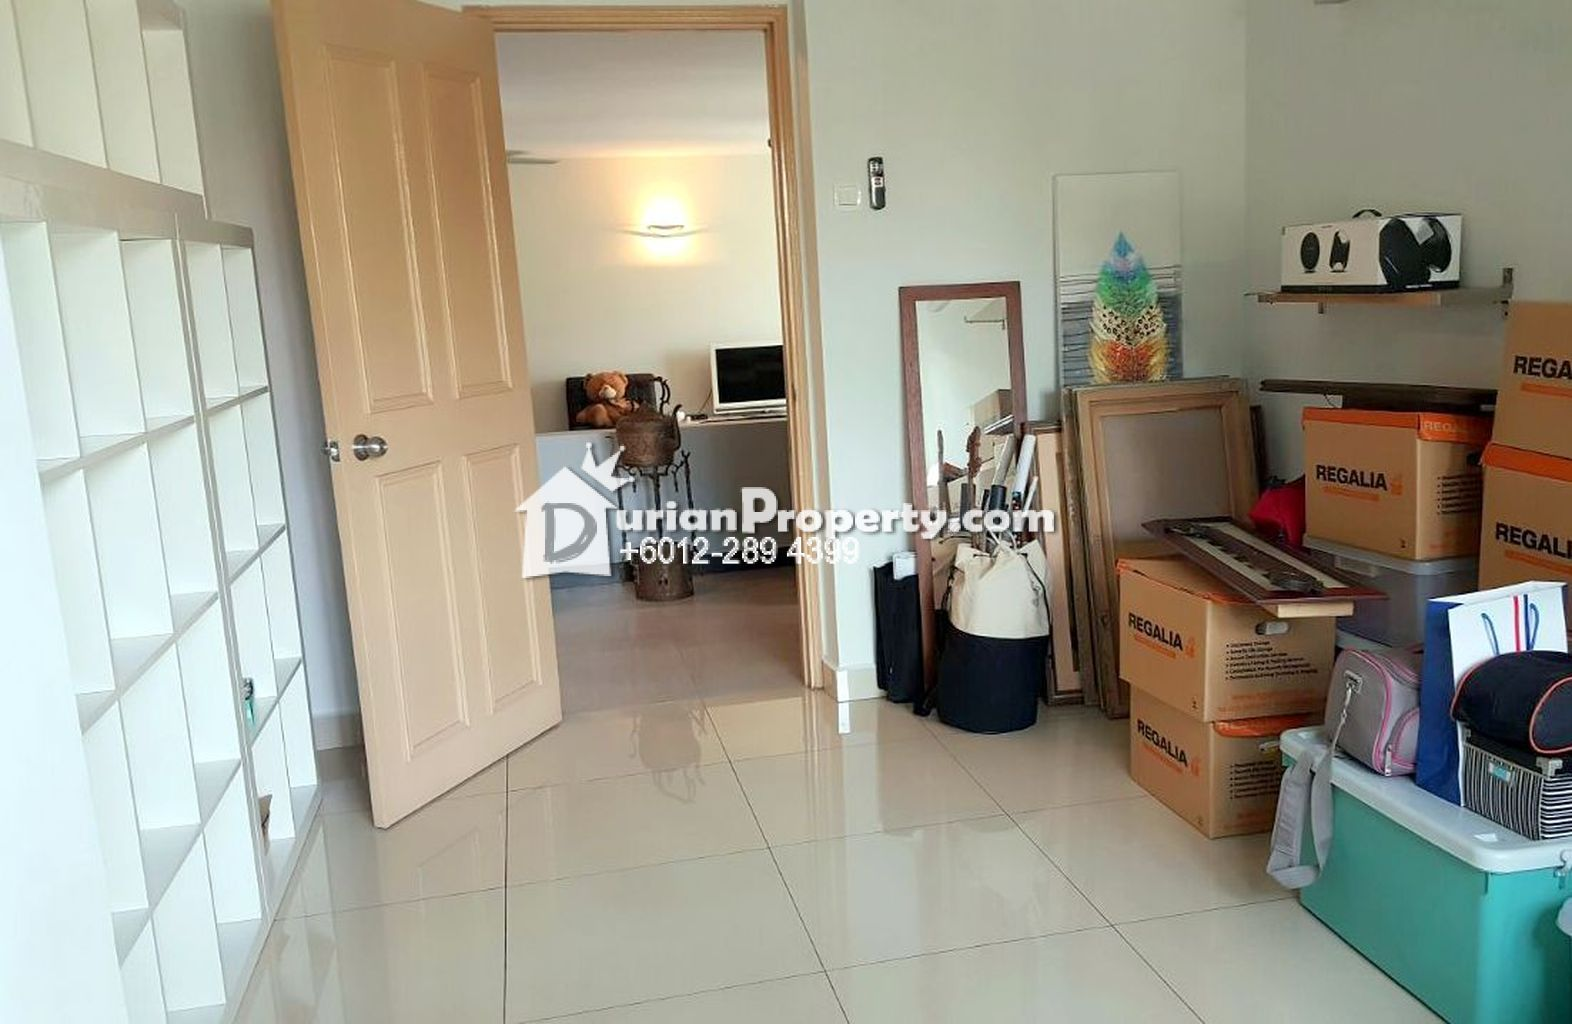 Gasing Heights Condo For Sale